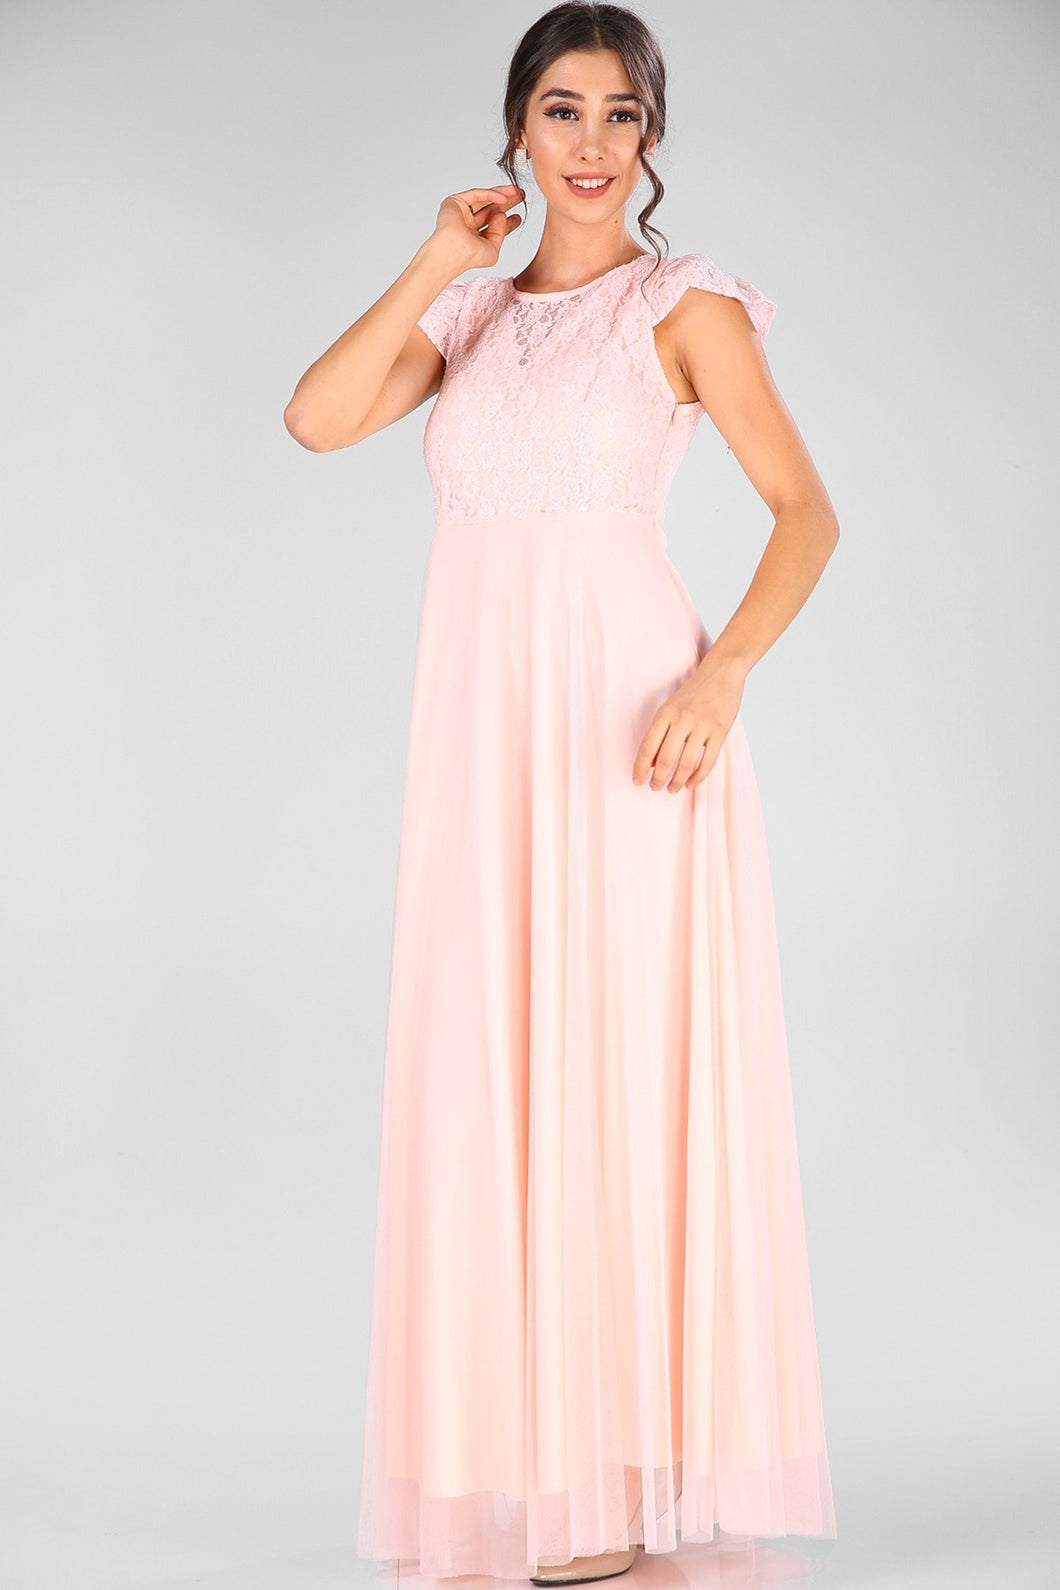 Powder Rose Evening Dress